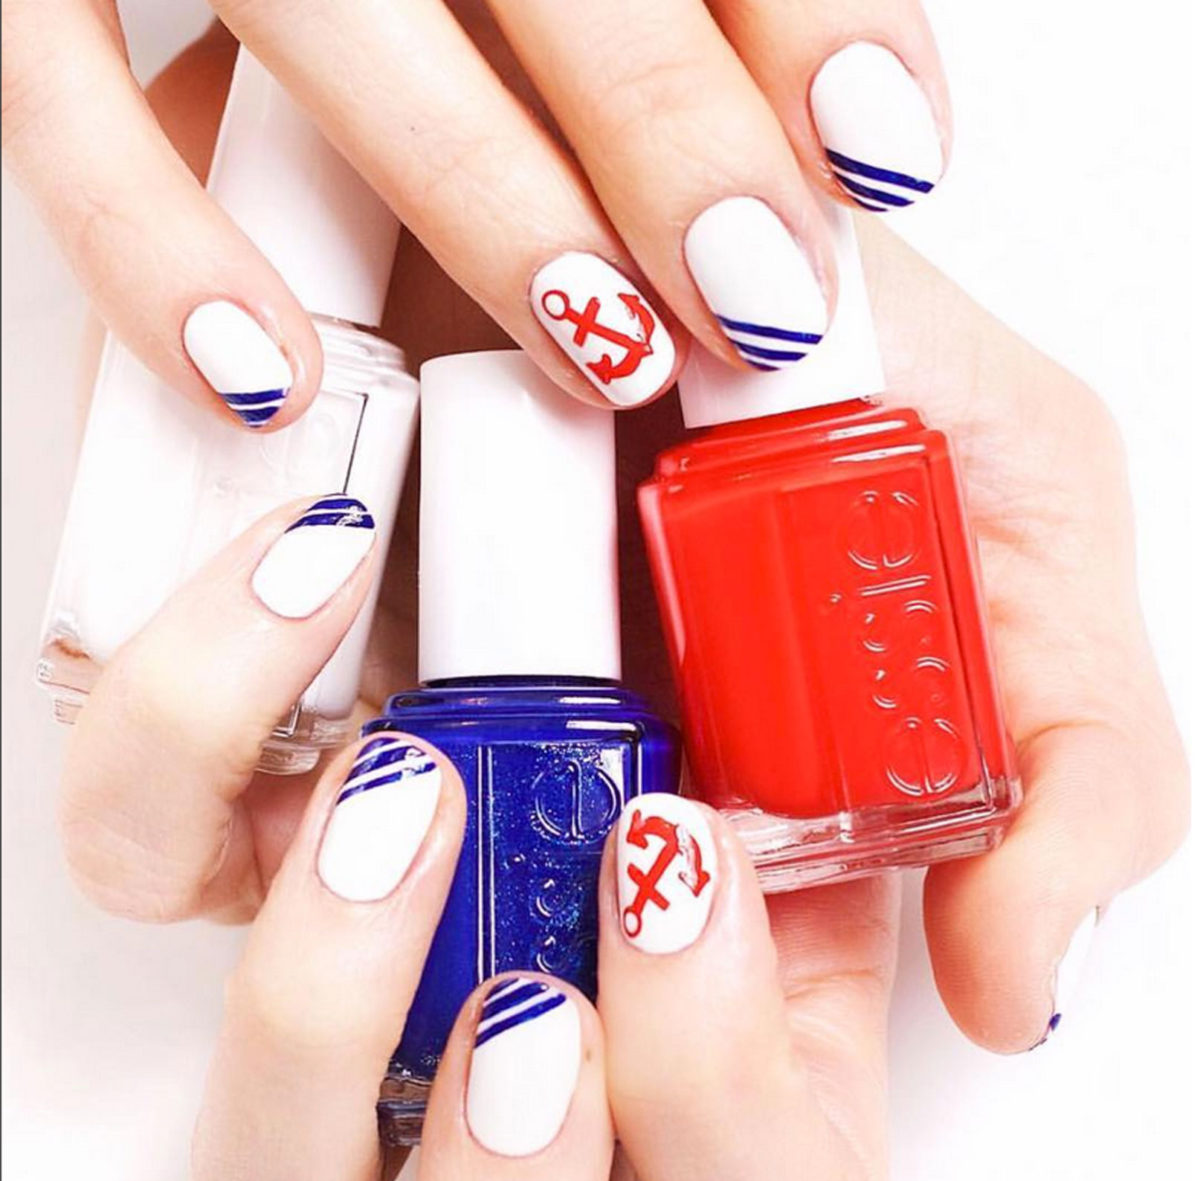 Beauty Inspiration: Maritimer Nagellack!